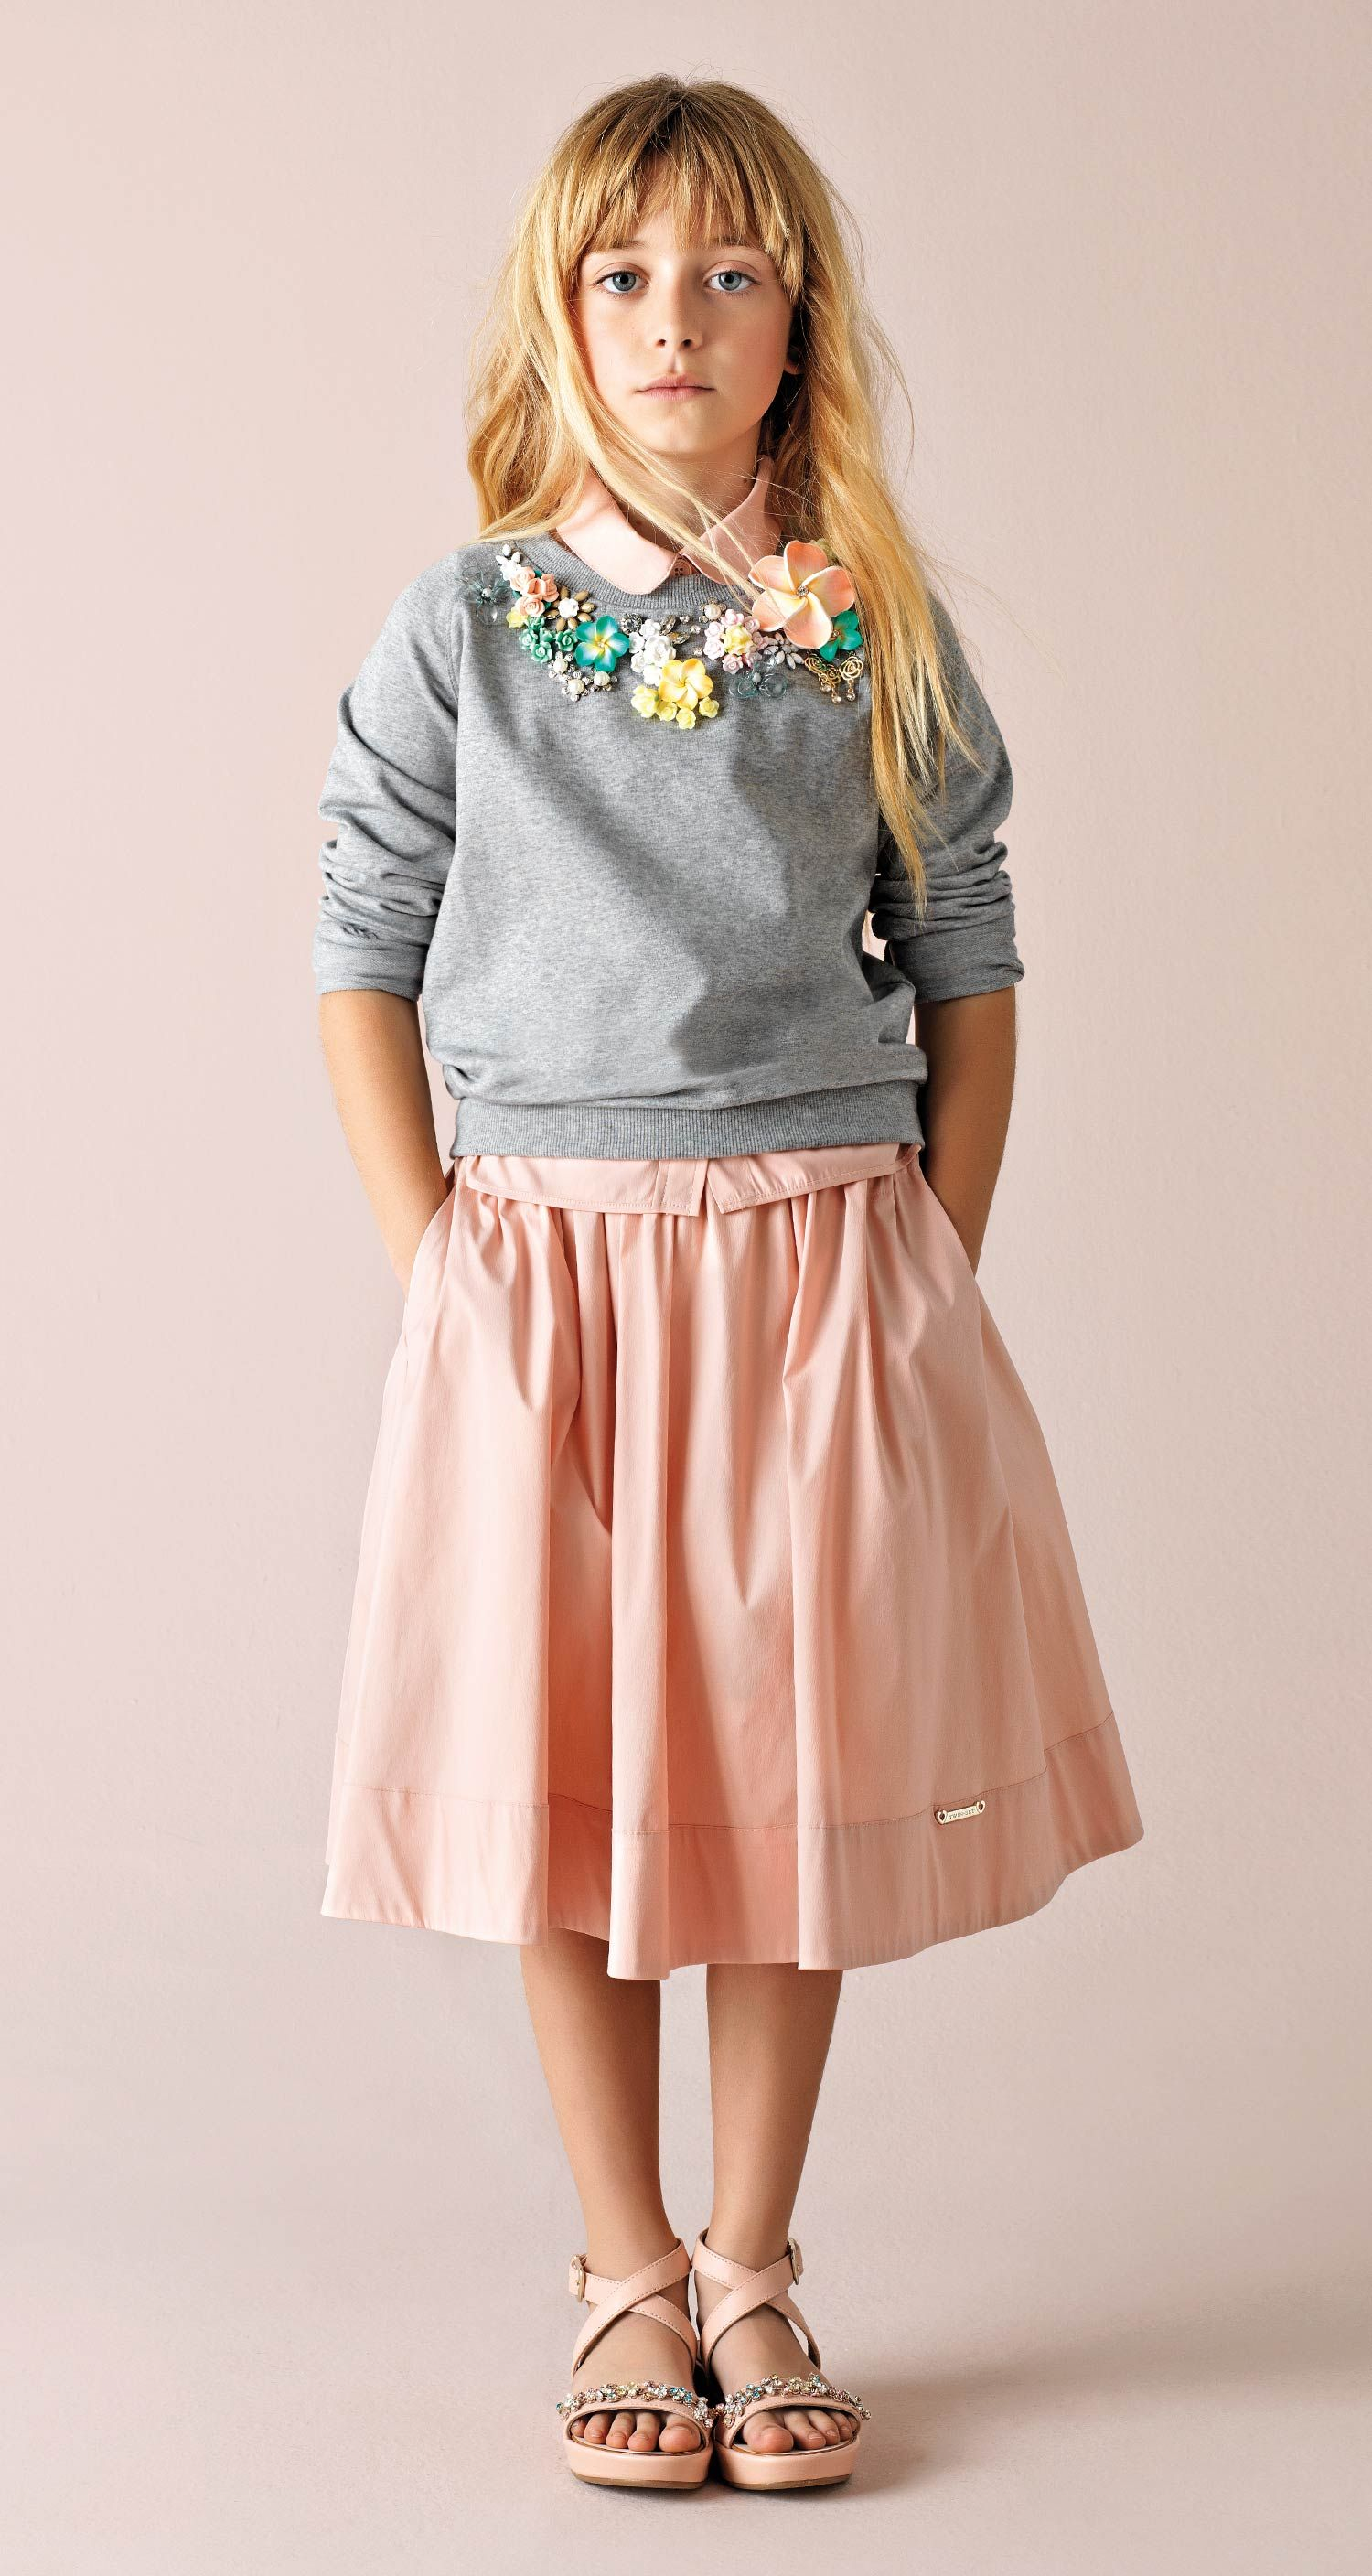 Kids Outfits Clothes Fashion: I Would Like A Grown Up Version Of This Outfit